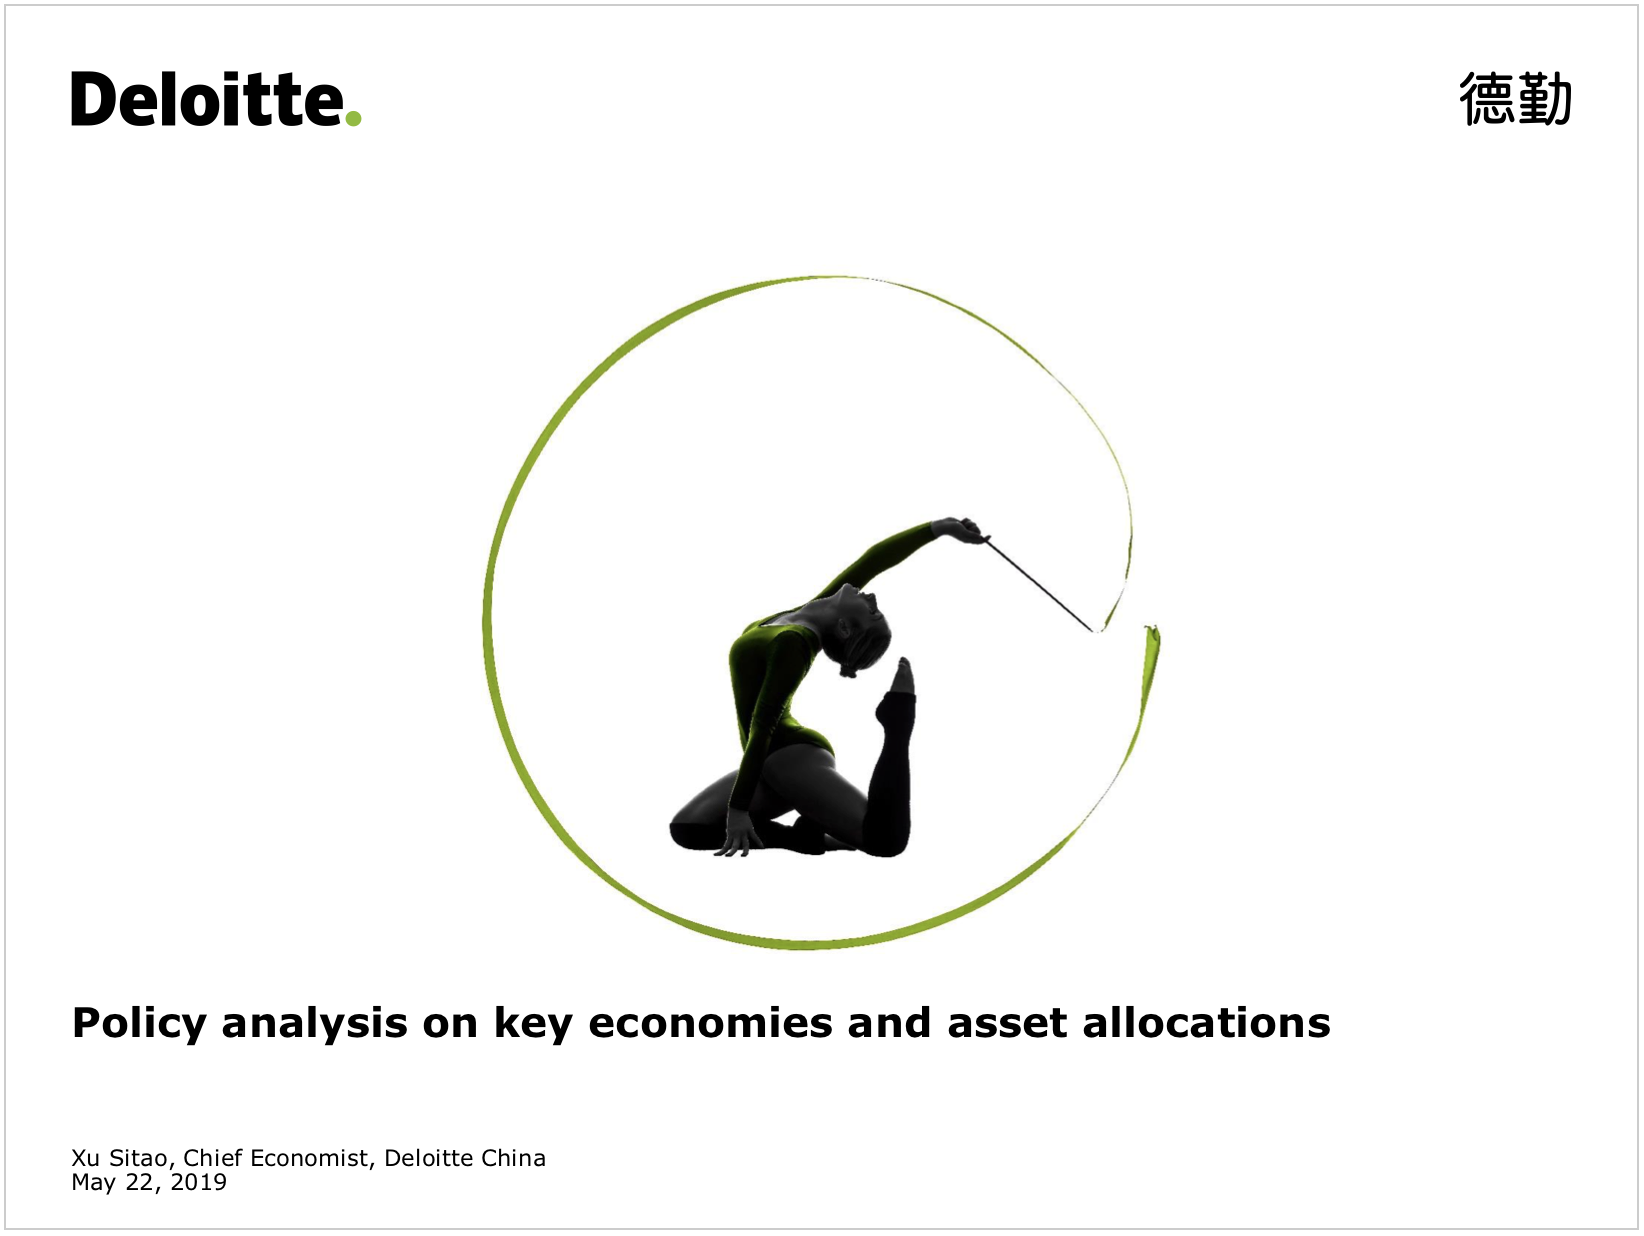 Policy analysis on key economies and asset allocations